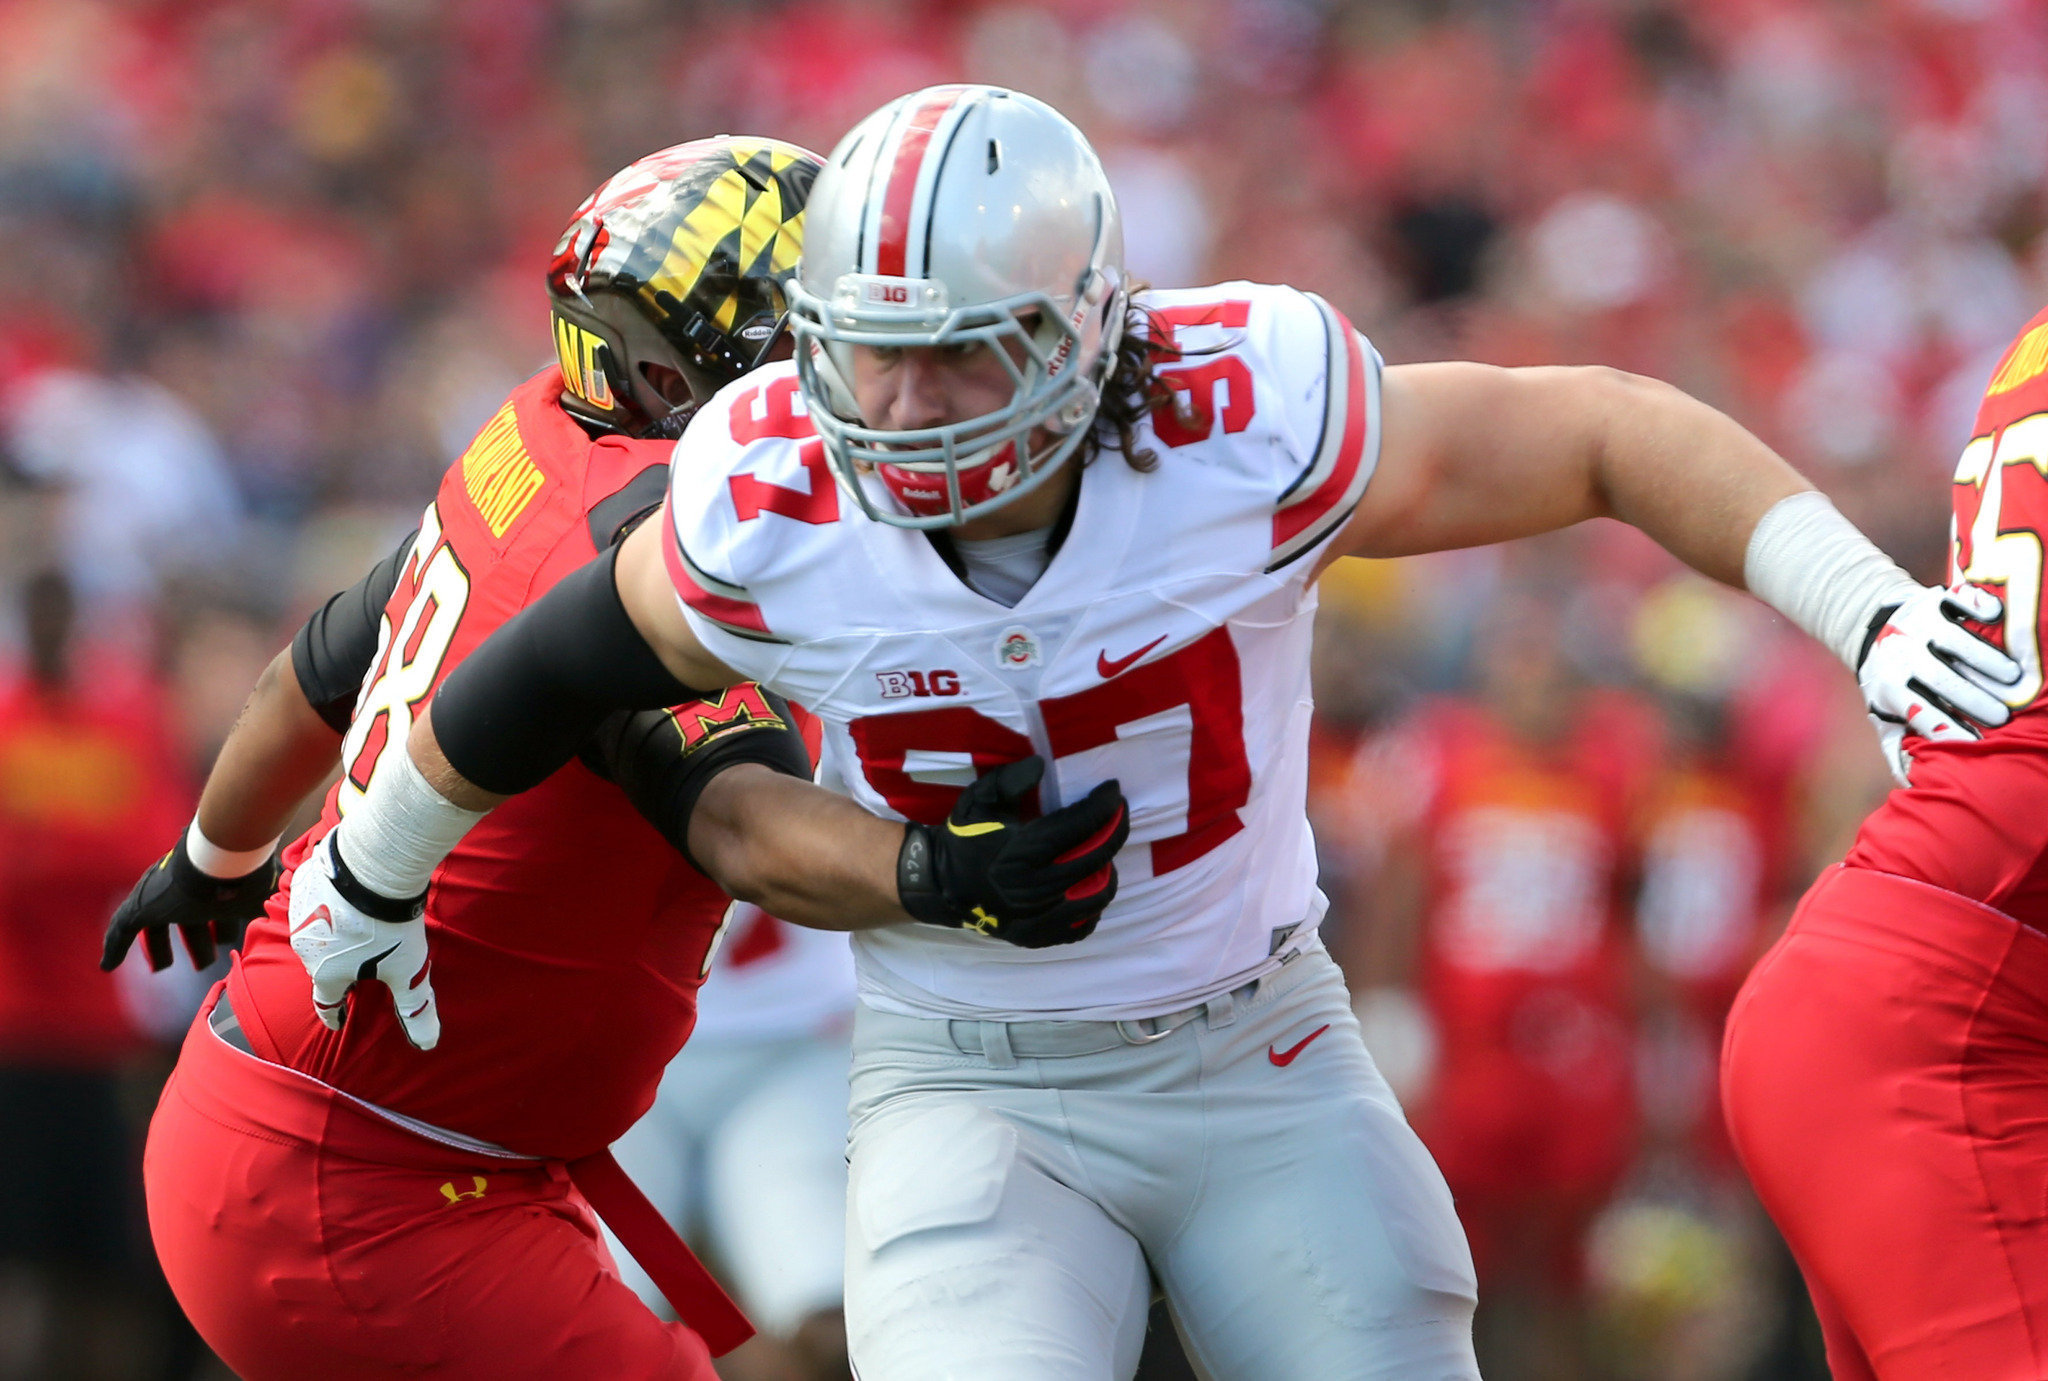 Future High NFL Draft Pick Bosa Sports Mafia Bloodline Traces